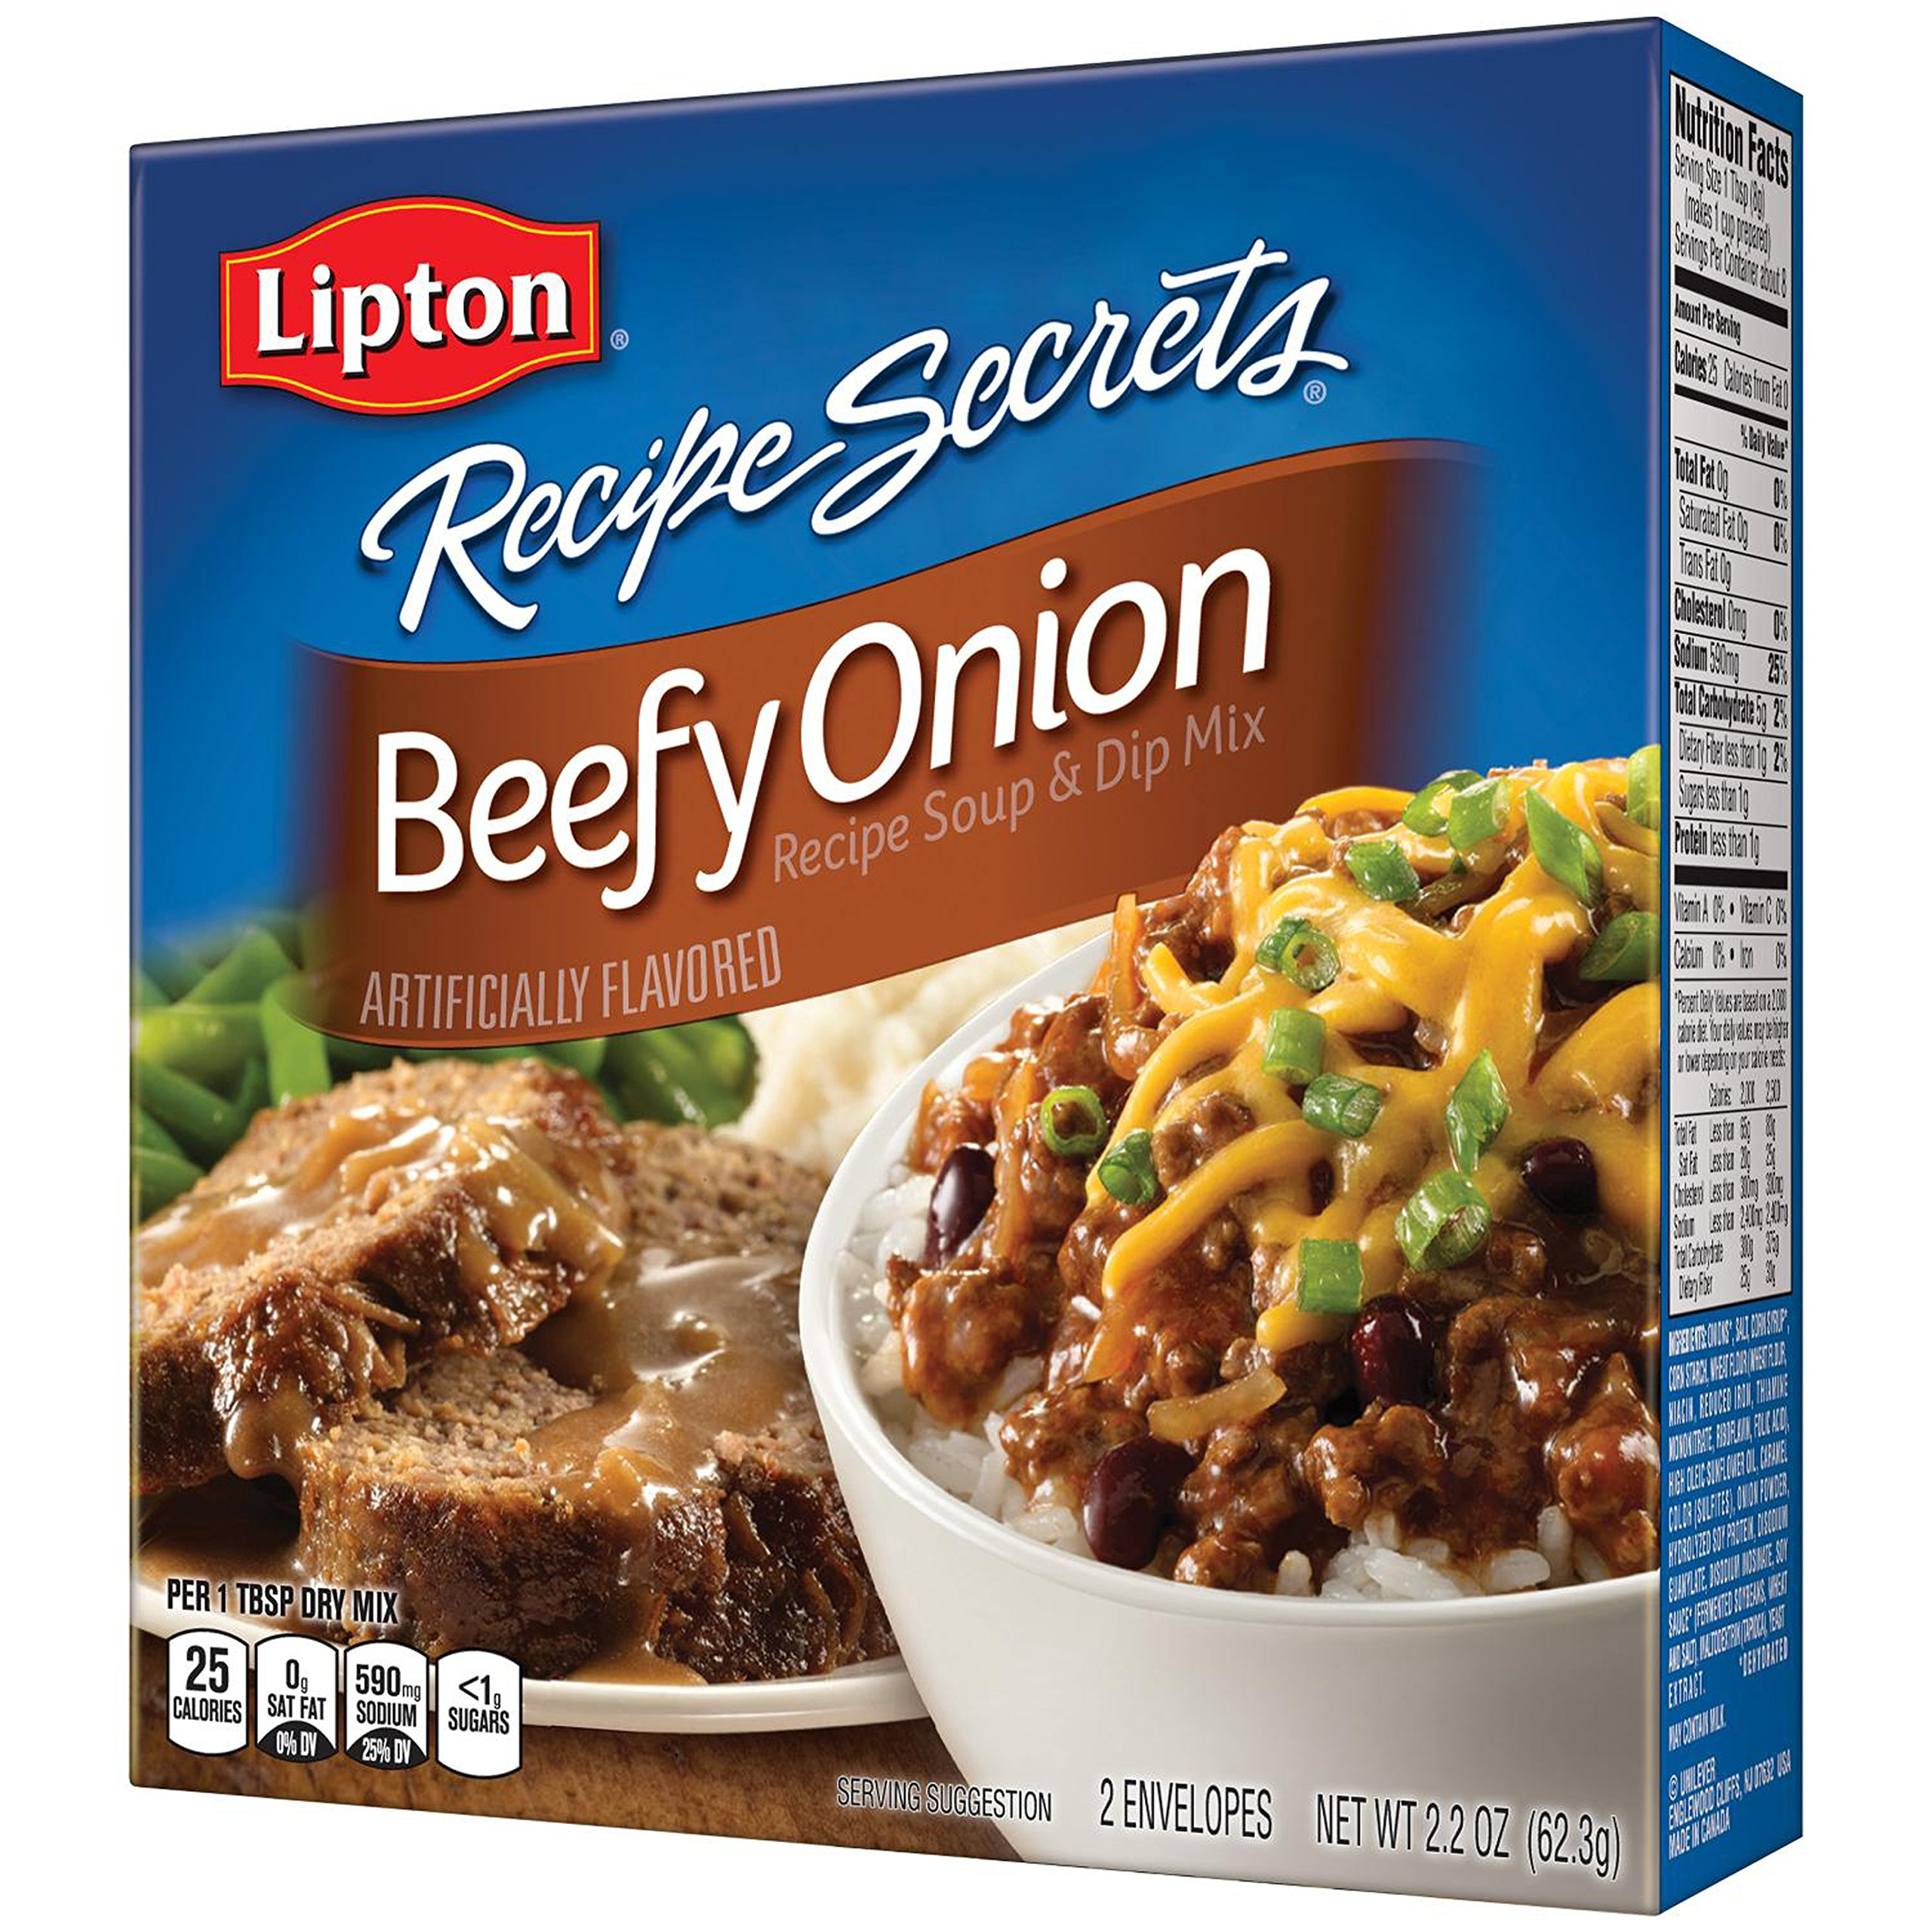 Lipton Recipe Secrets Soup and Dip Mix, Beefy Onion 2.2 oz, Pack of 6 by Lipton Soup